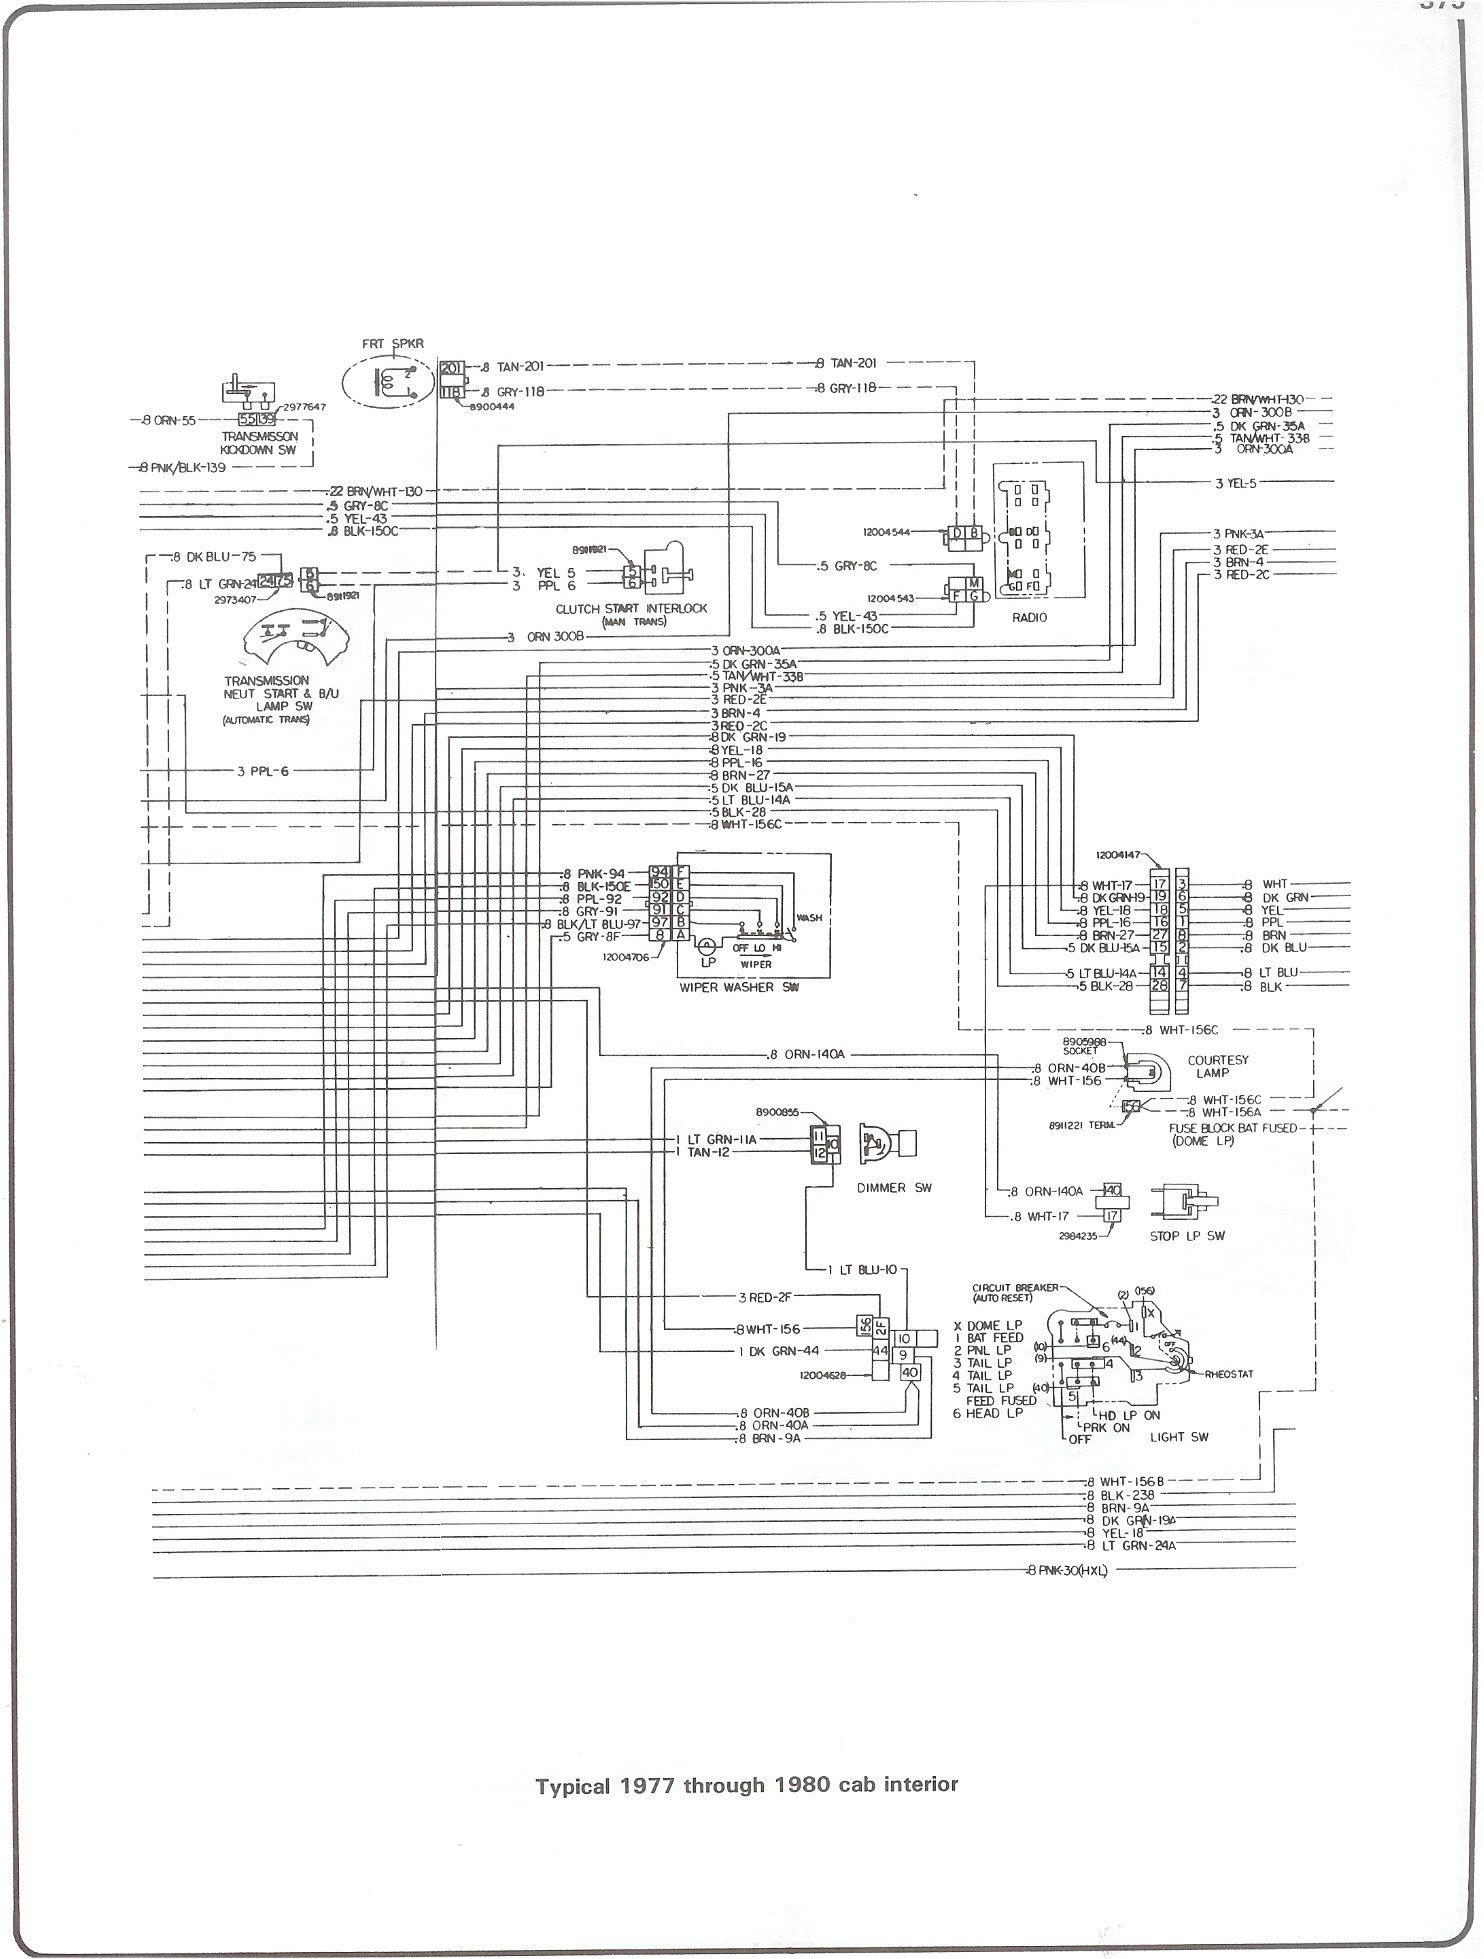 1983 Chevrolet Wiring Diagram Wiring Diagram Permanent A Permanent A Emilia Fise It